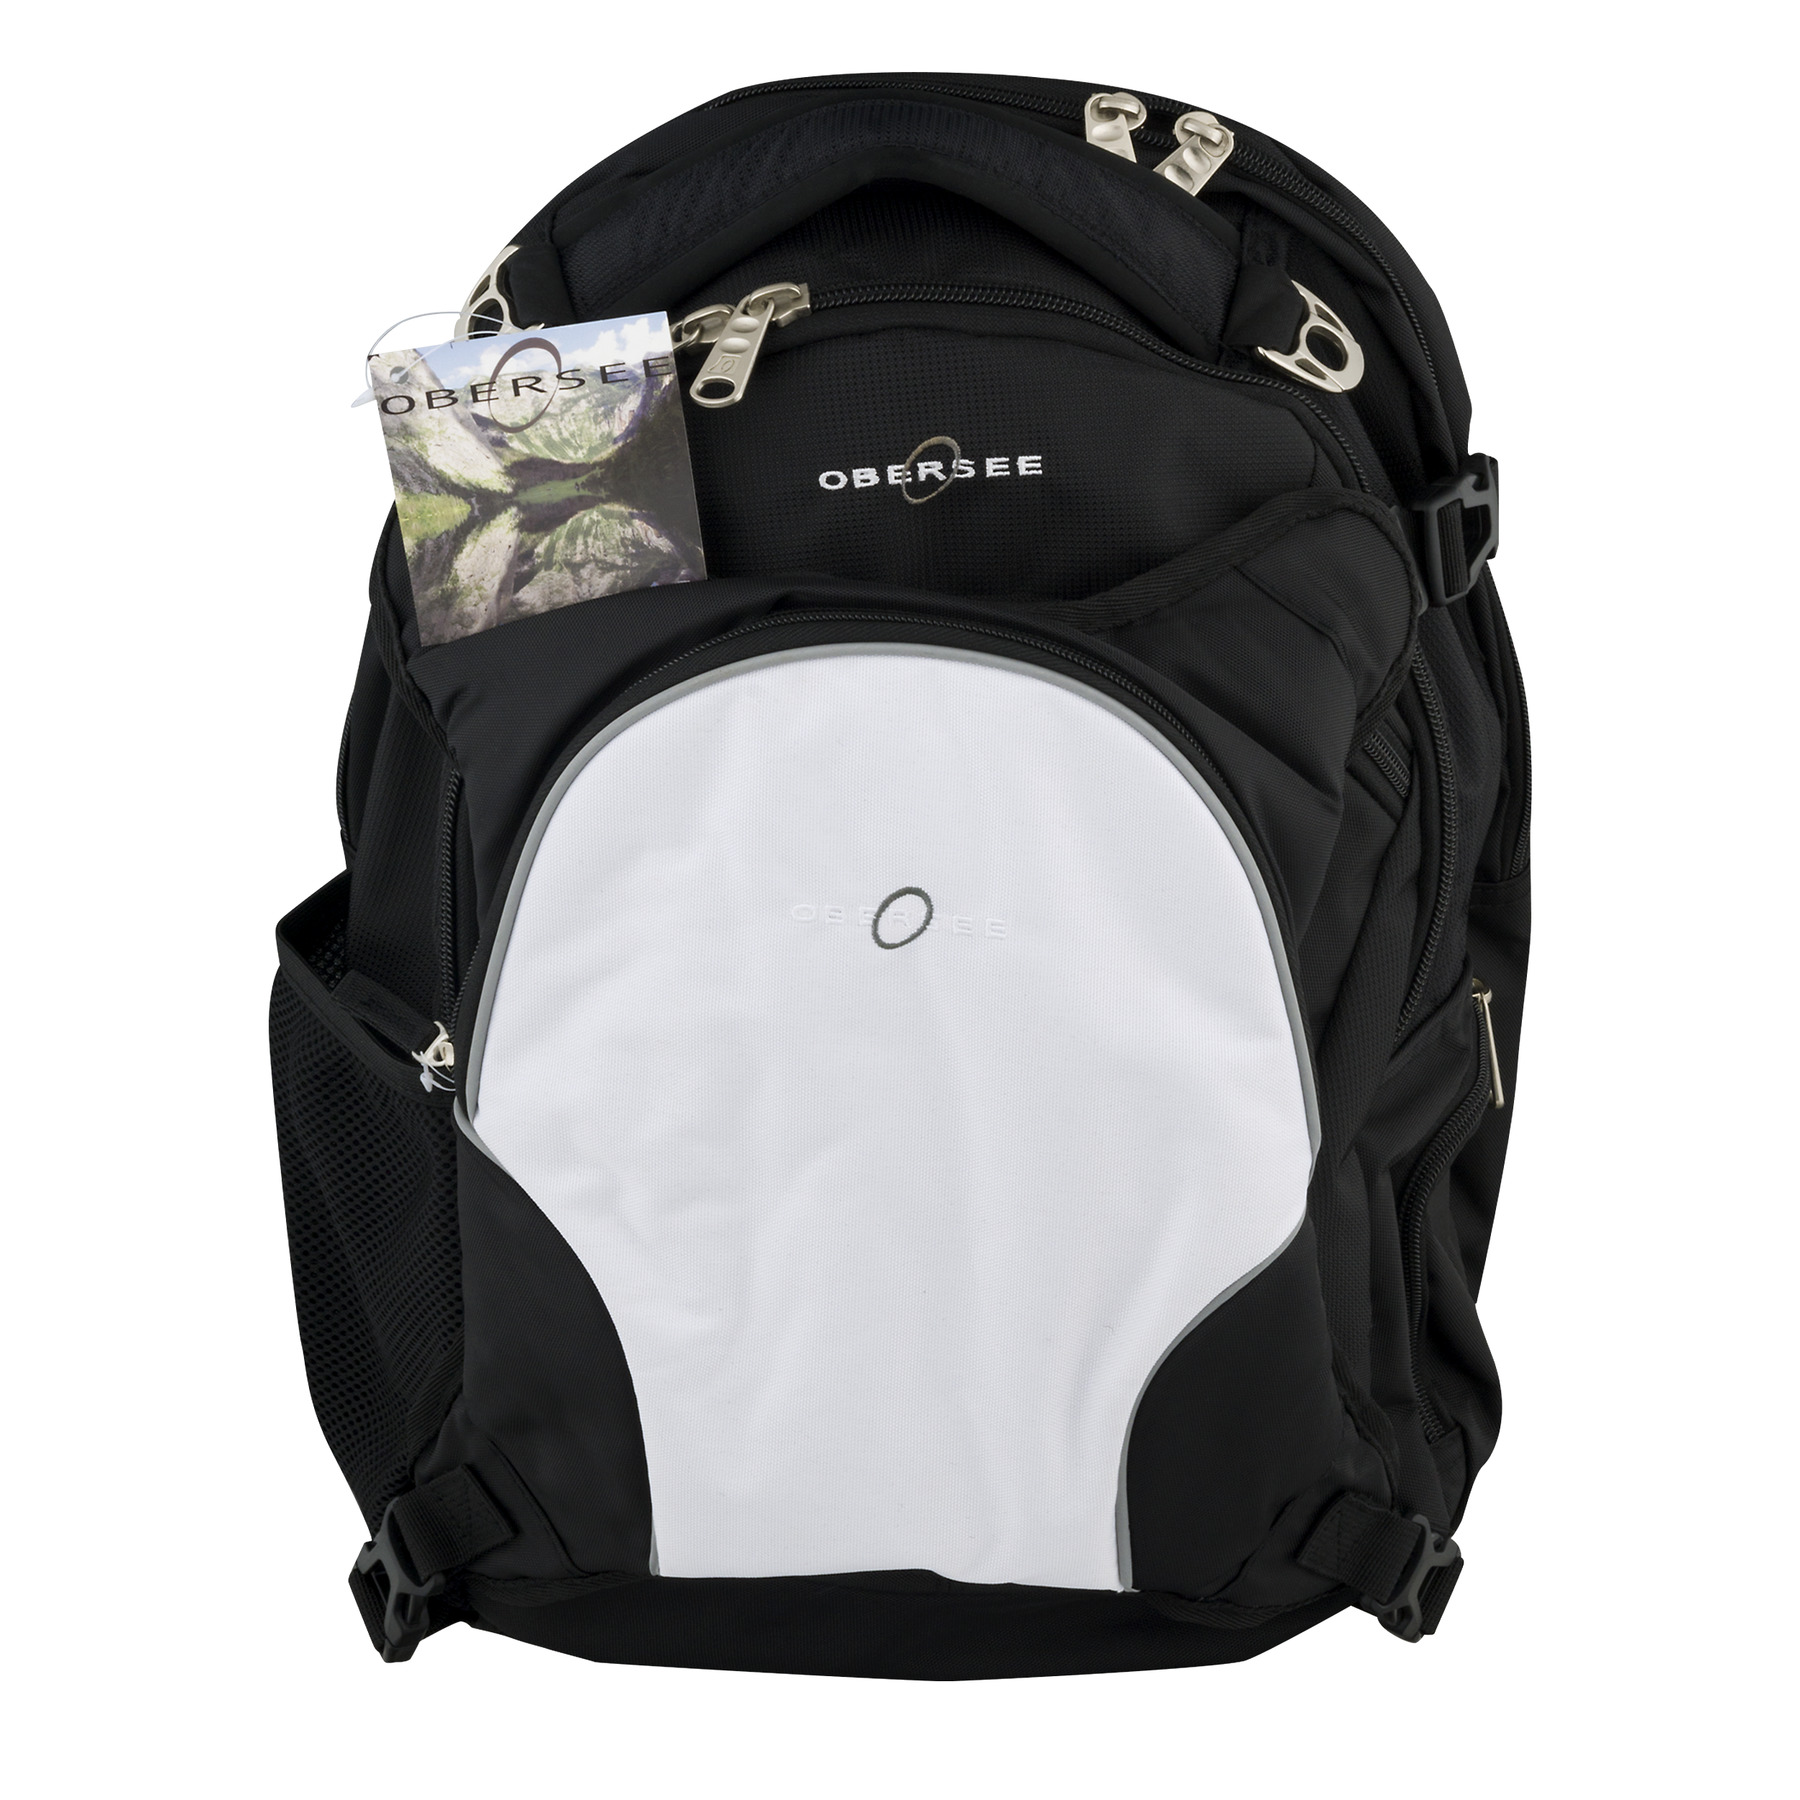 Obersee Oslo Diaper Bag Backpack With Cooler Black/White, 5.0 CT